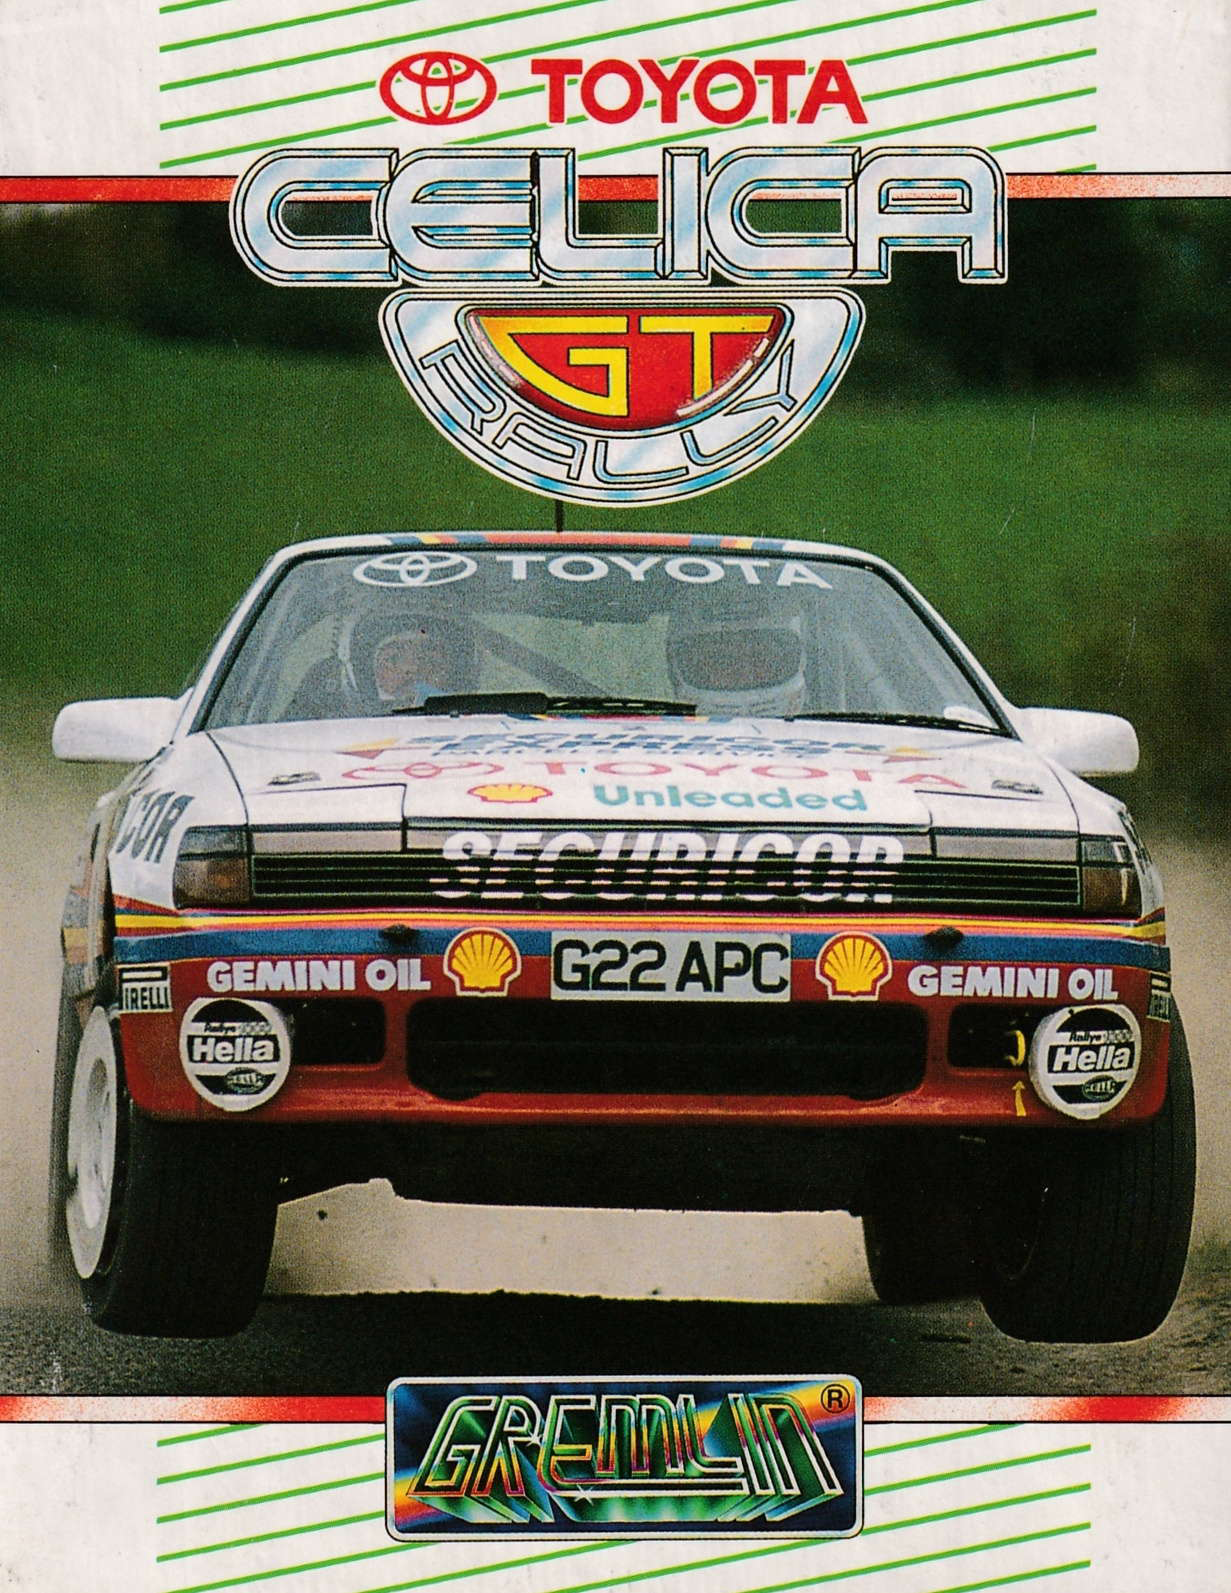 cover of the Amstrad CPC game Toyota Celica GT Rally  by GameBase CPC